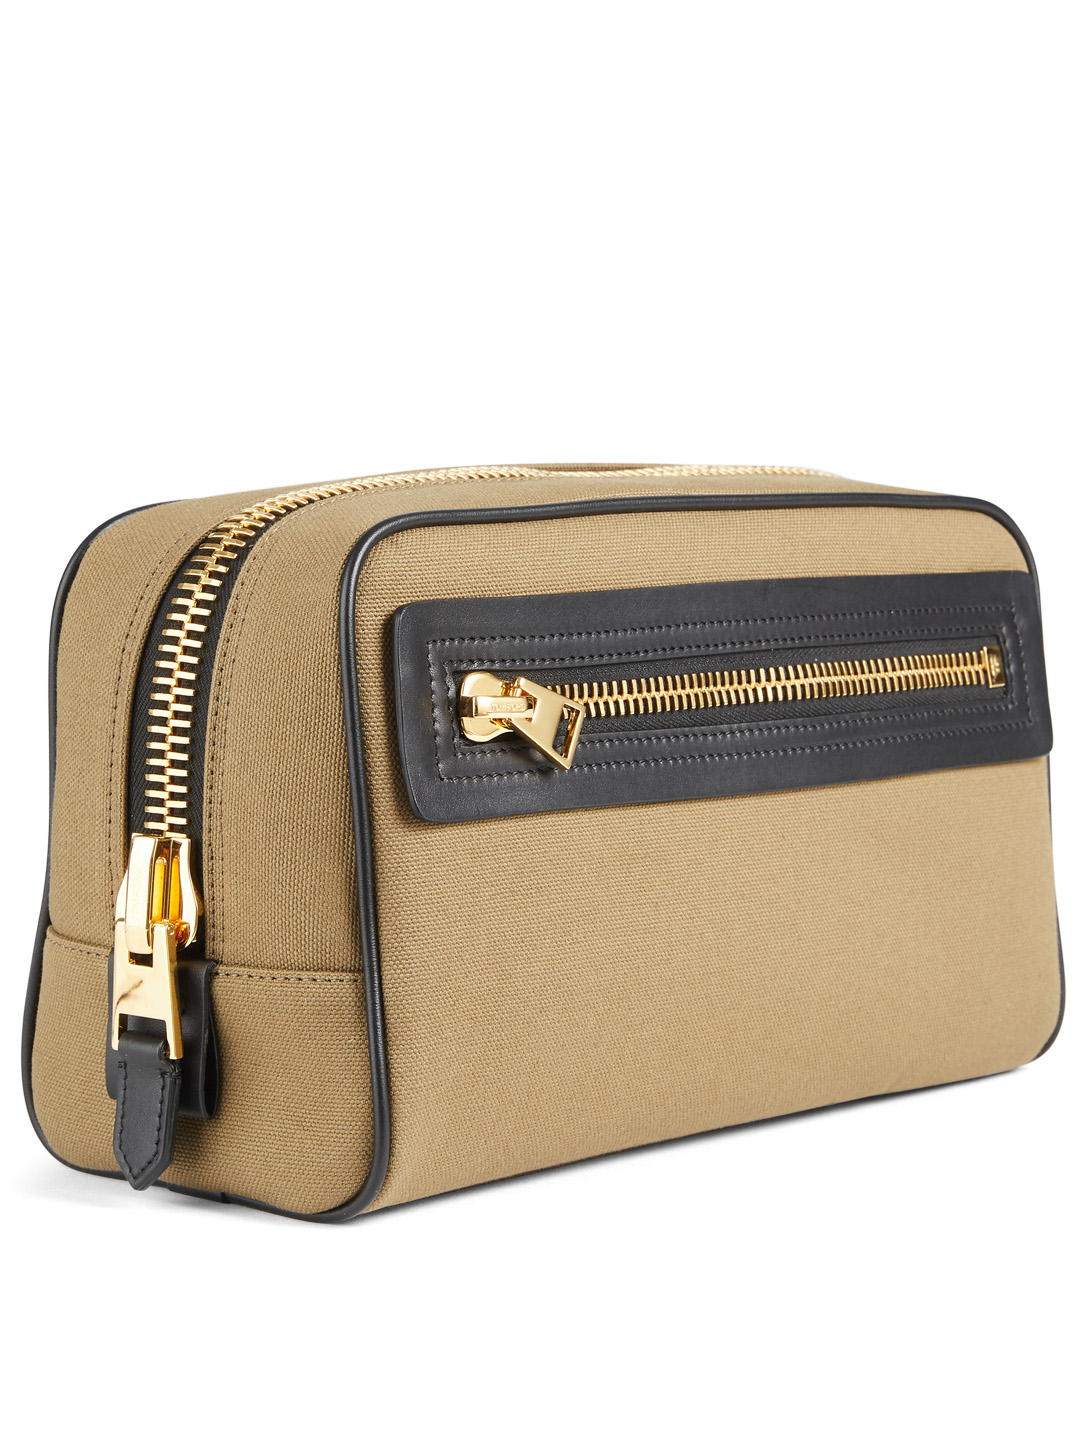 TOM FORD Canvas Dopp Kit Bag Men's Neutral